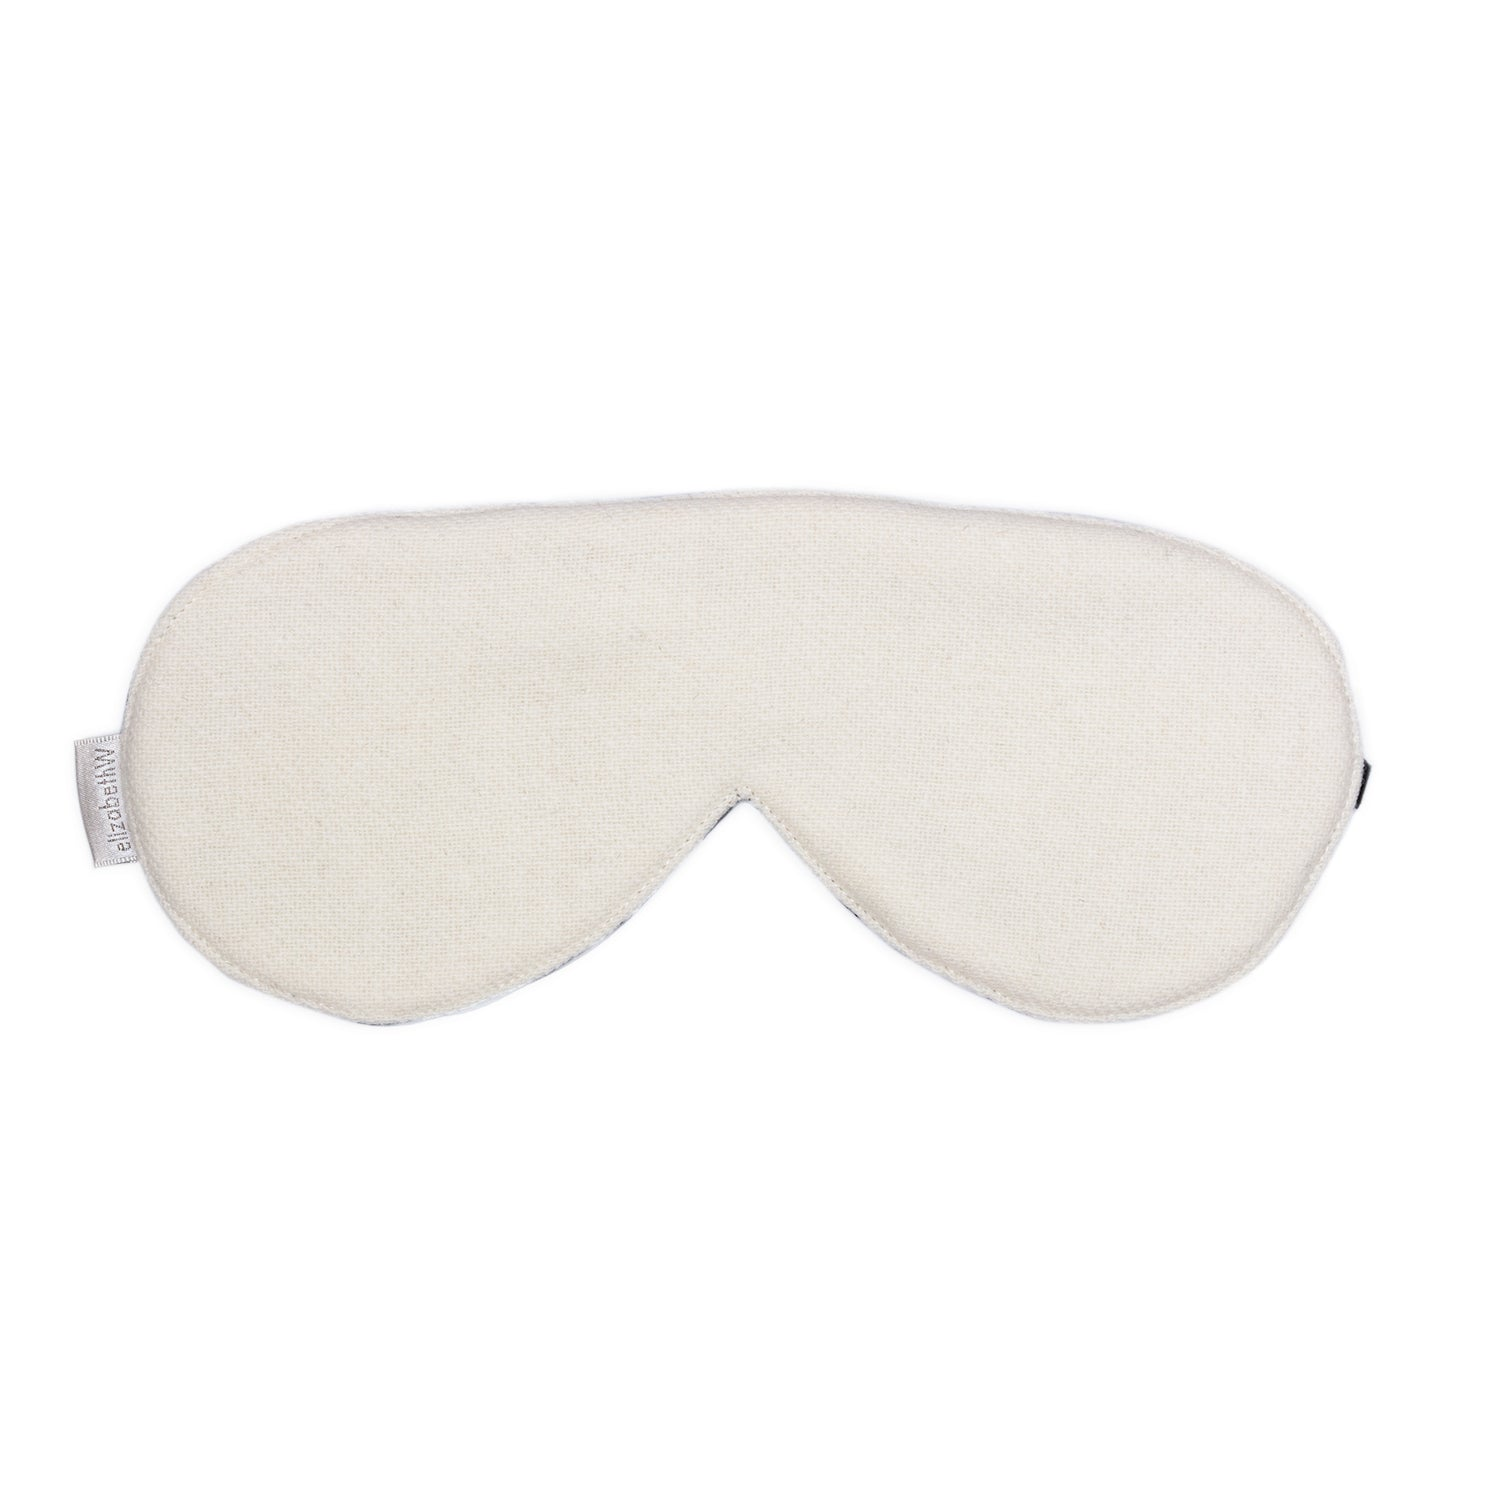 Wool - Cream Sleep Mask